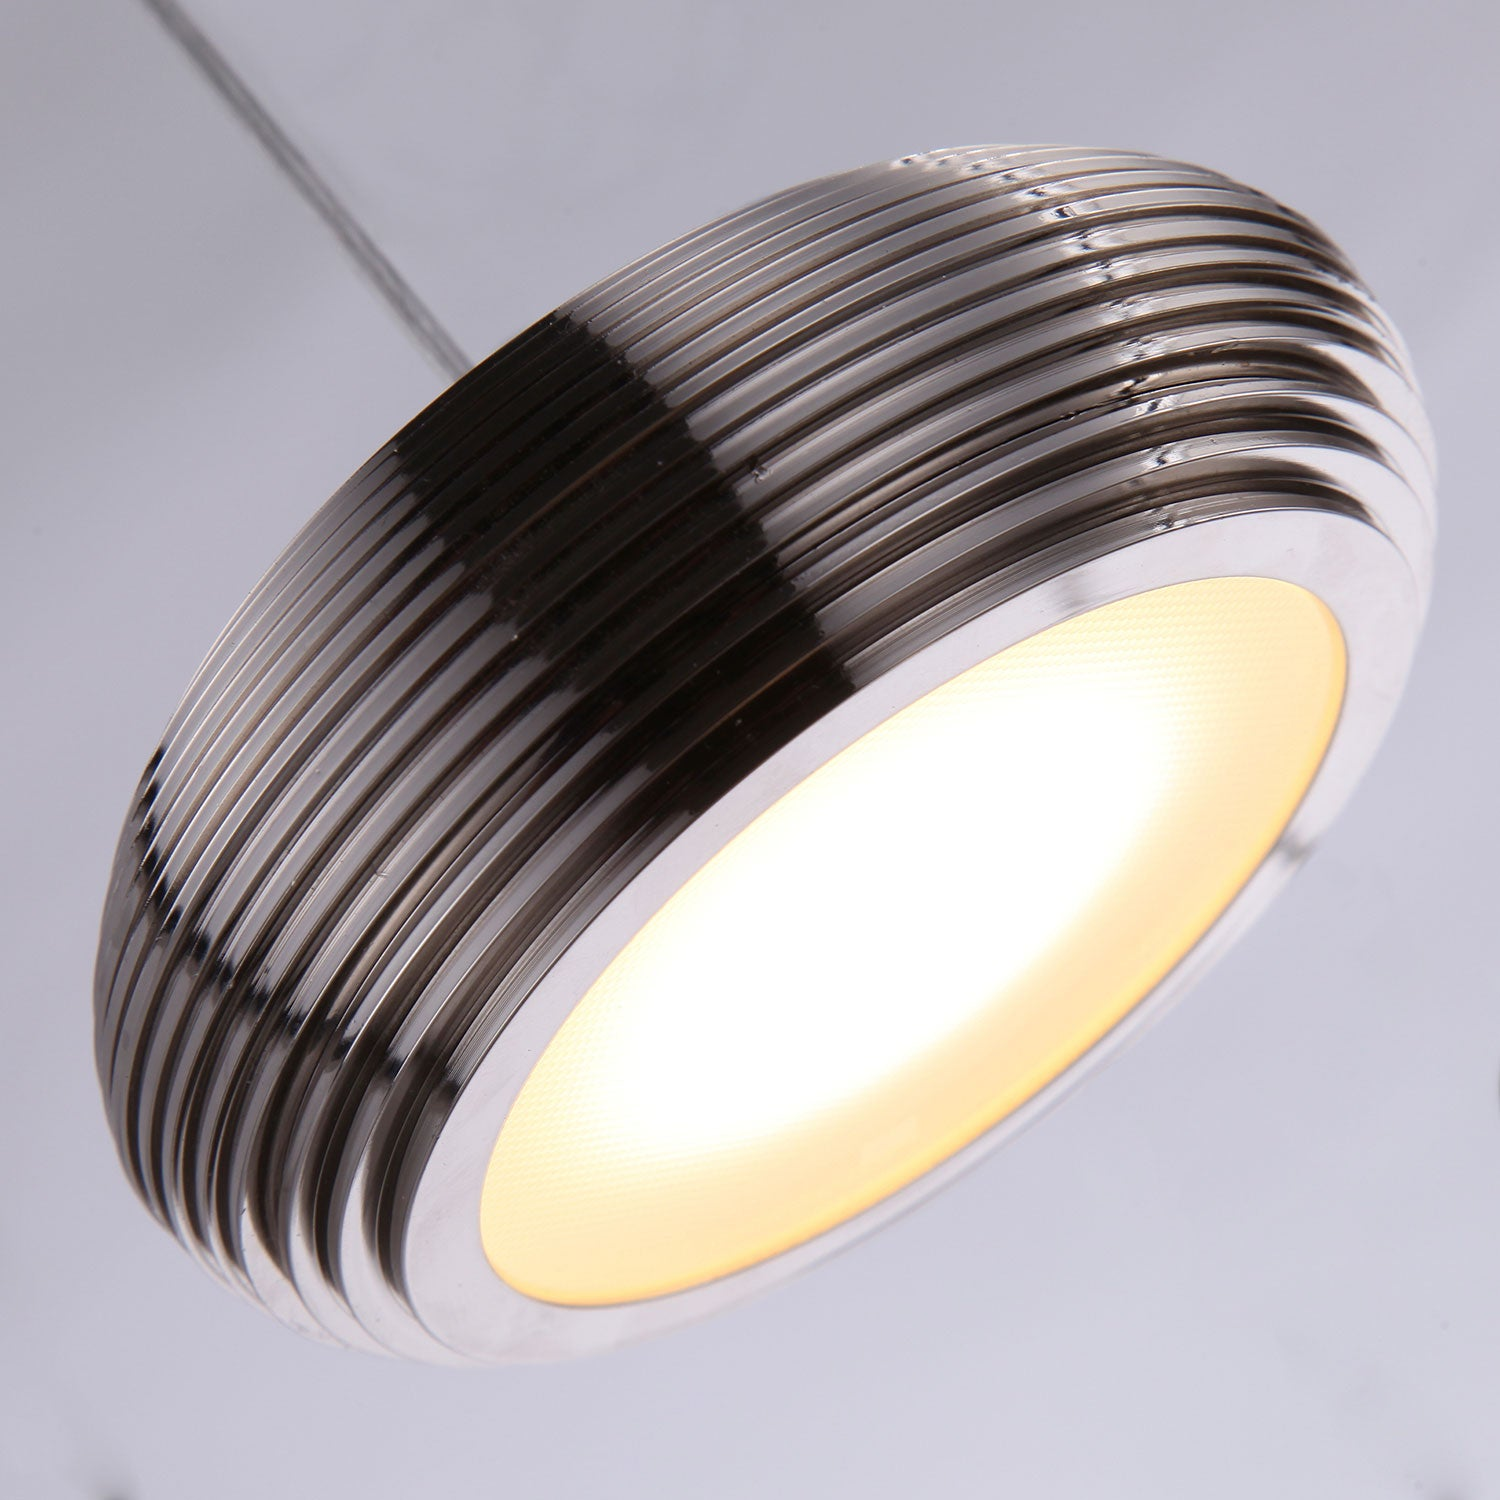 Scala 10-light LED mini pendant